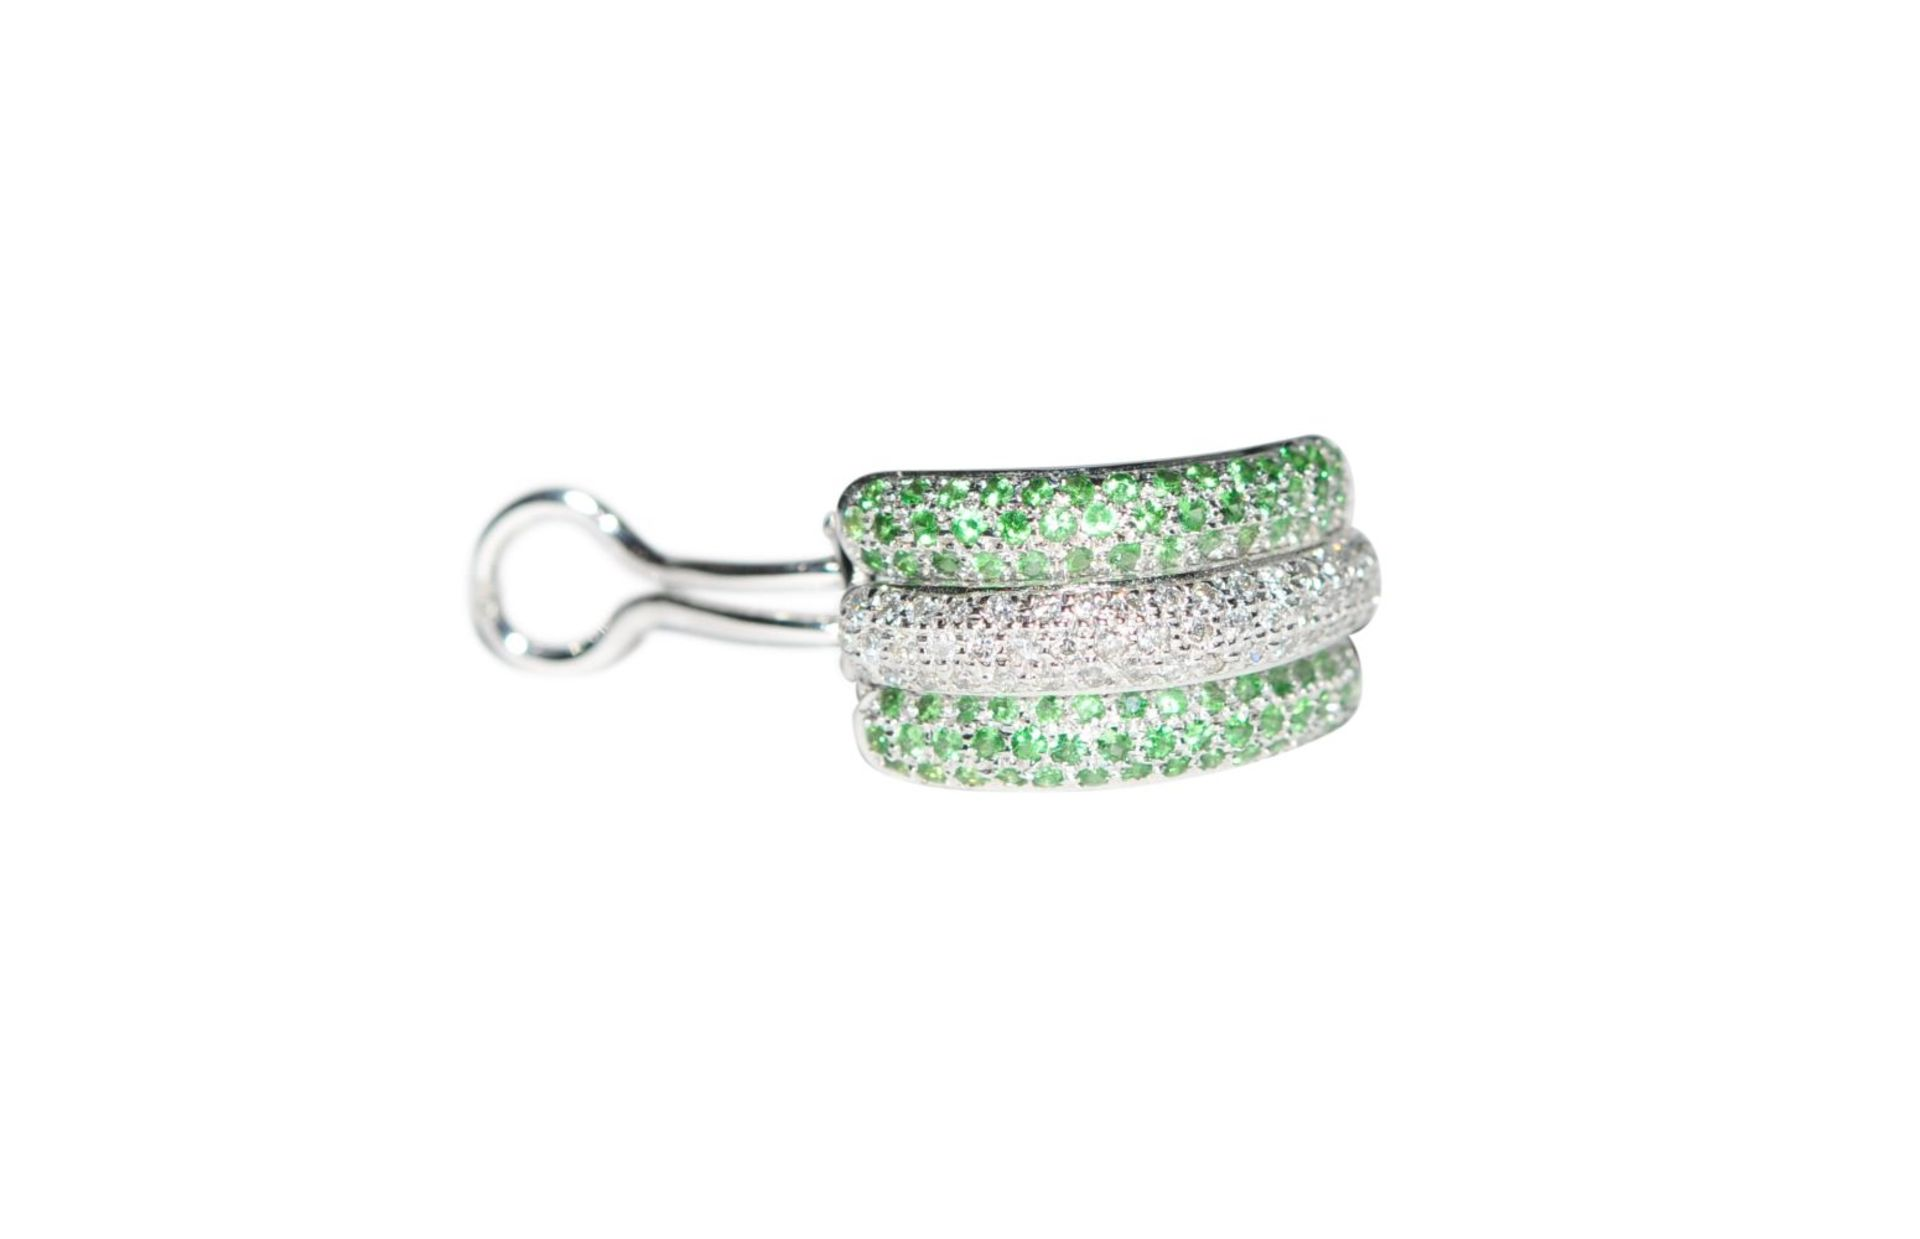 Los 105 - Ear clips18Kt white gold ear clips, with diamonds total carat weight approx. 0.77ct and tsavorite,